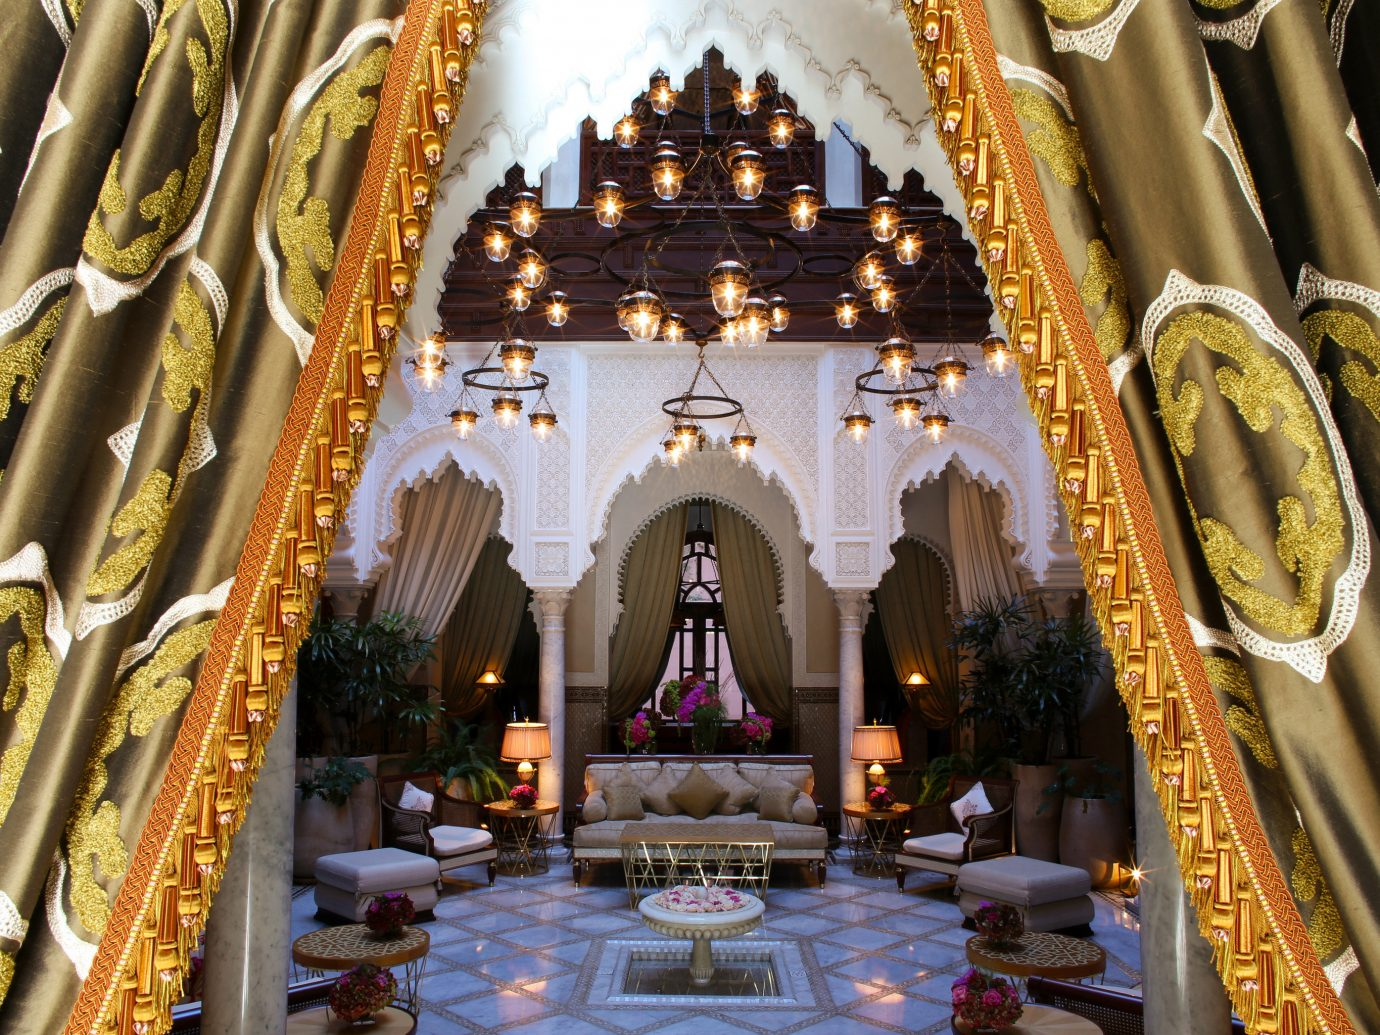 Hotels Luxury Travel building place of worship wat palace aisle cathedral shrine temple vestment altar